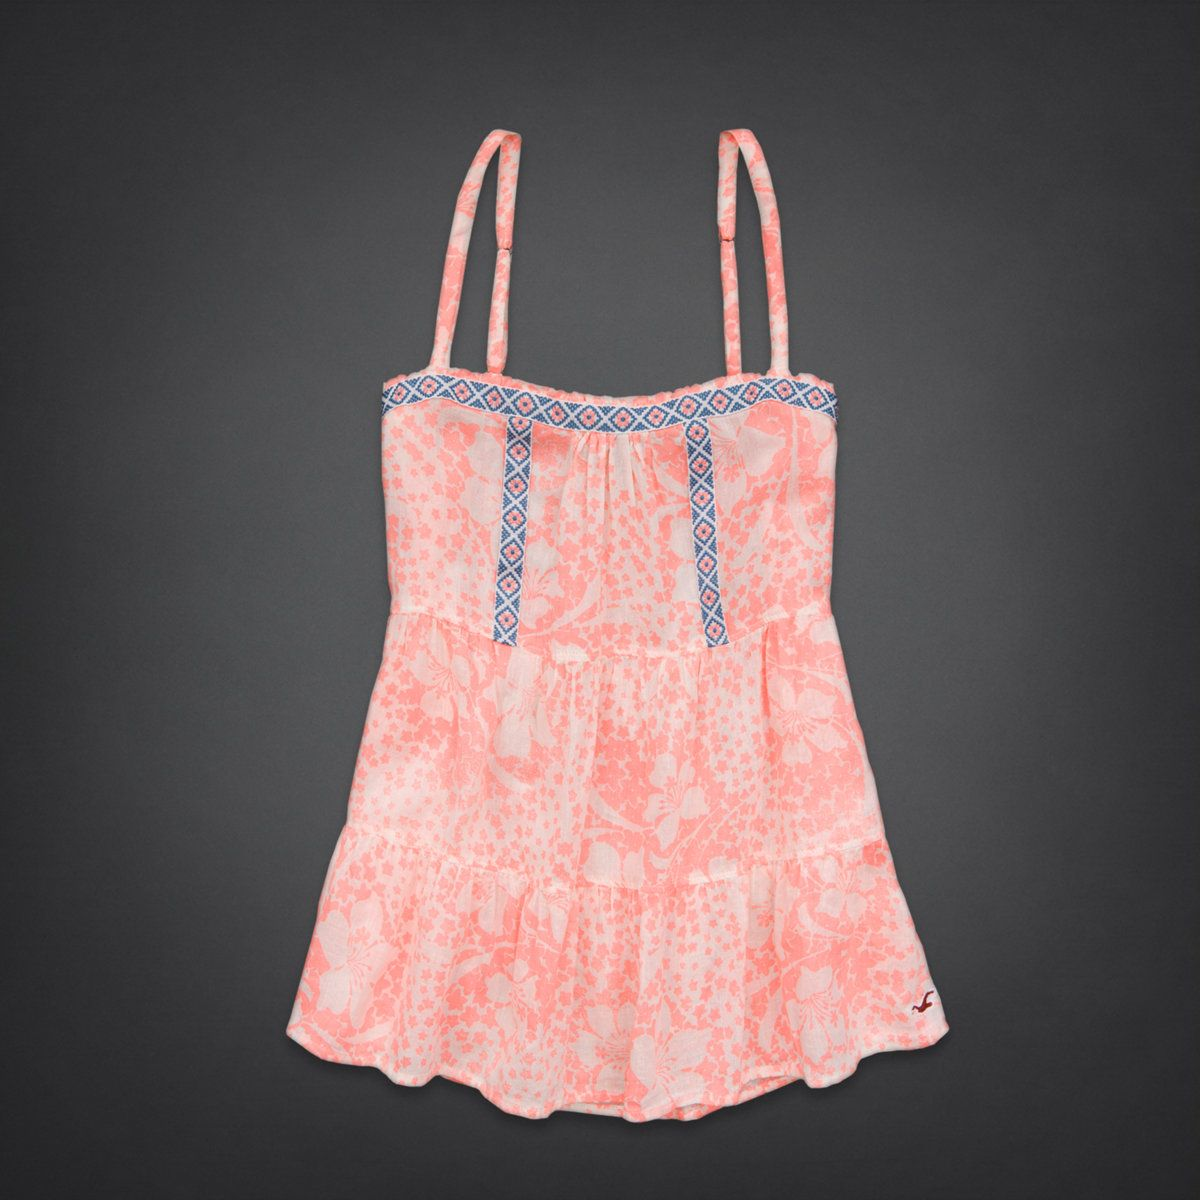 Bettys Hermosa Cami | Bettys Fashion Tops | HollisterCo.com